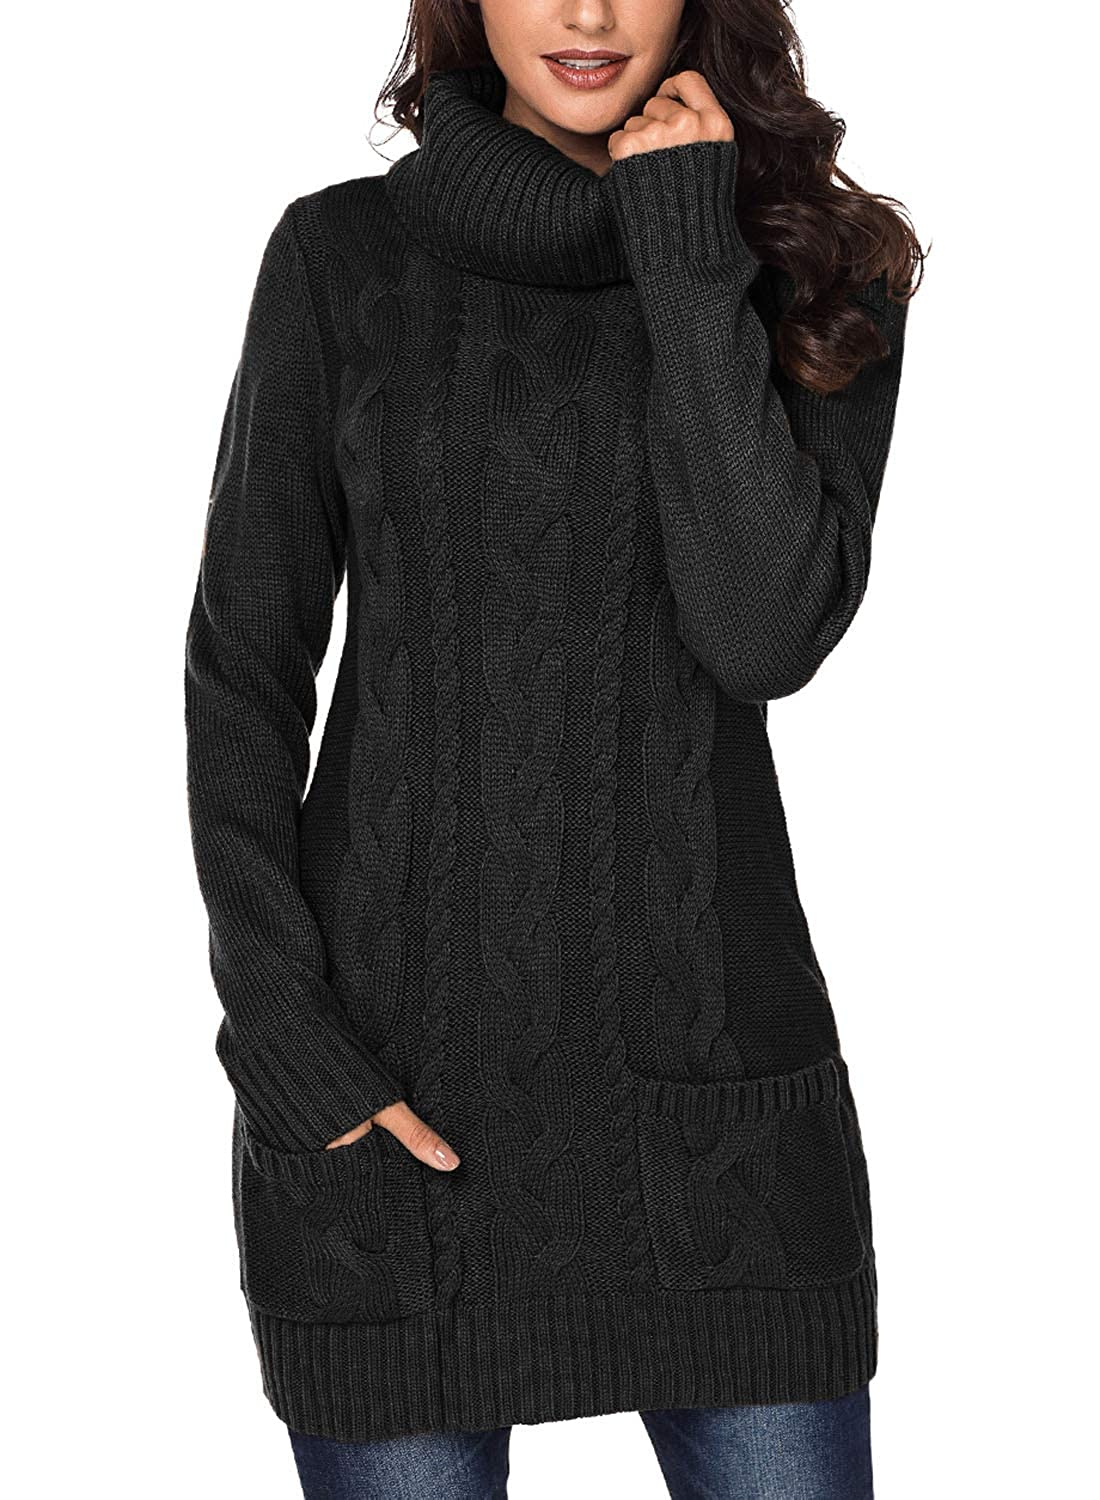 7278a2d2e9 BLENCOT Womens Turtleneck Long Sleeve Elasticity Chunky Cable Knit Pullover  Sweaters Jumper with Pockets